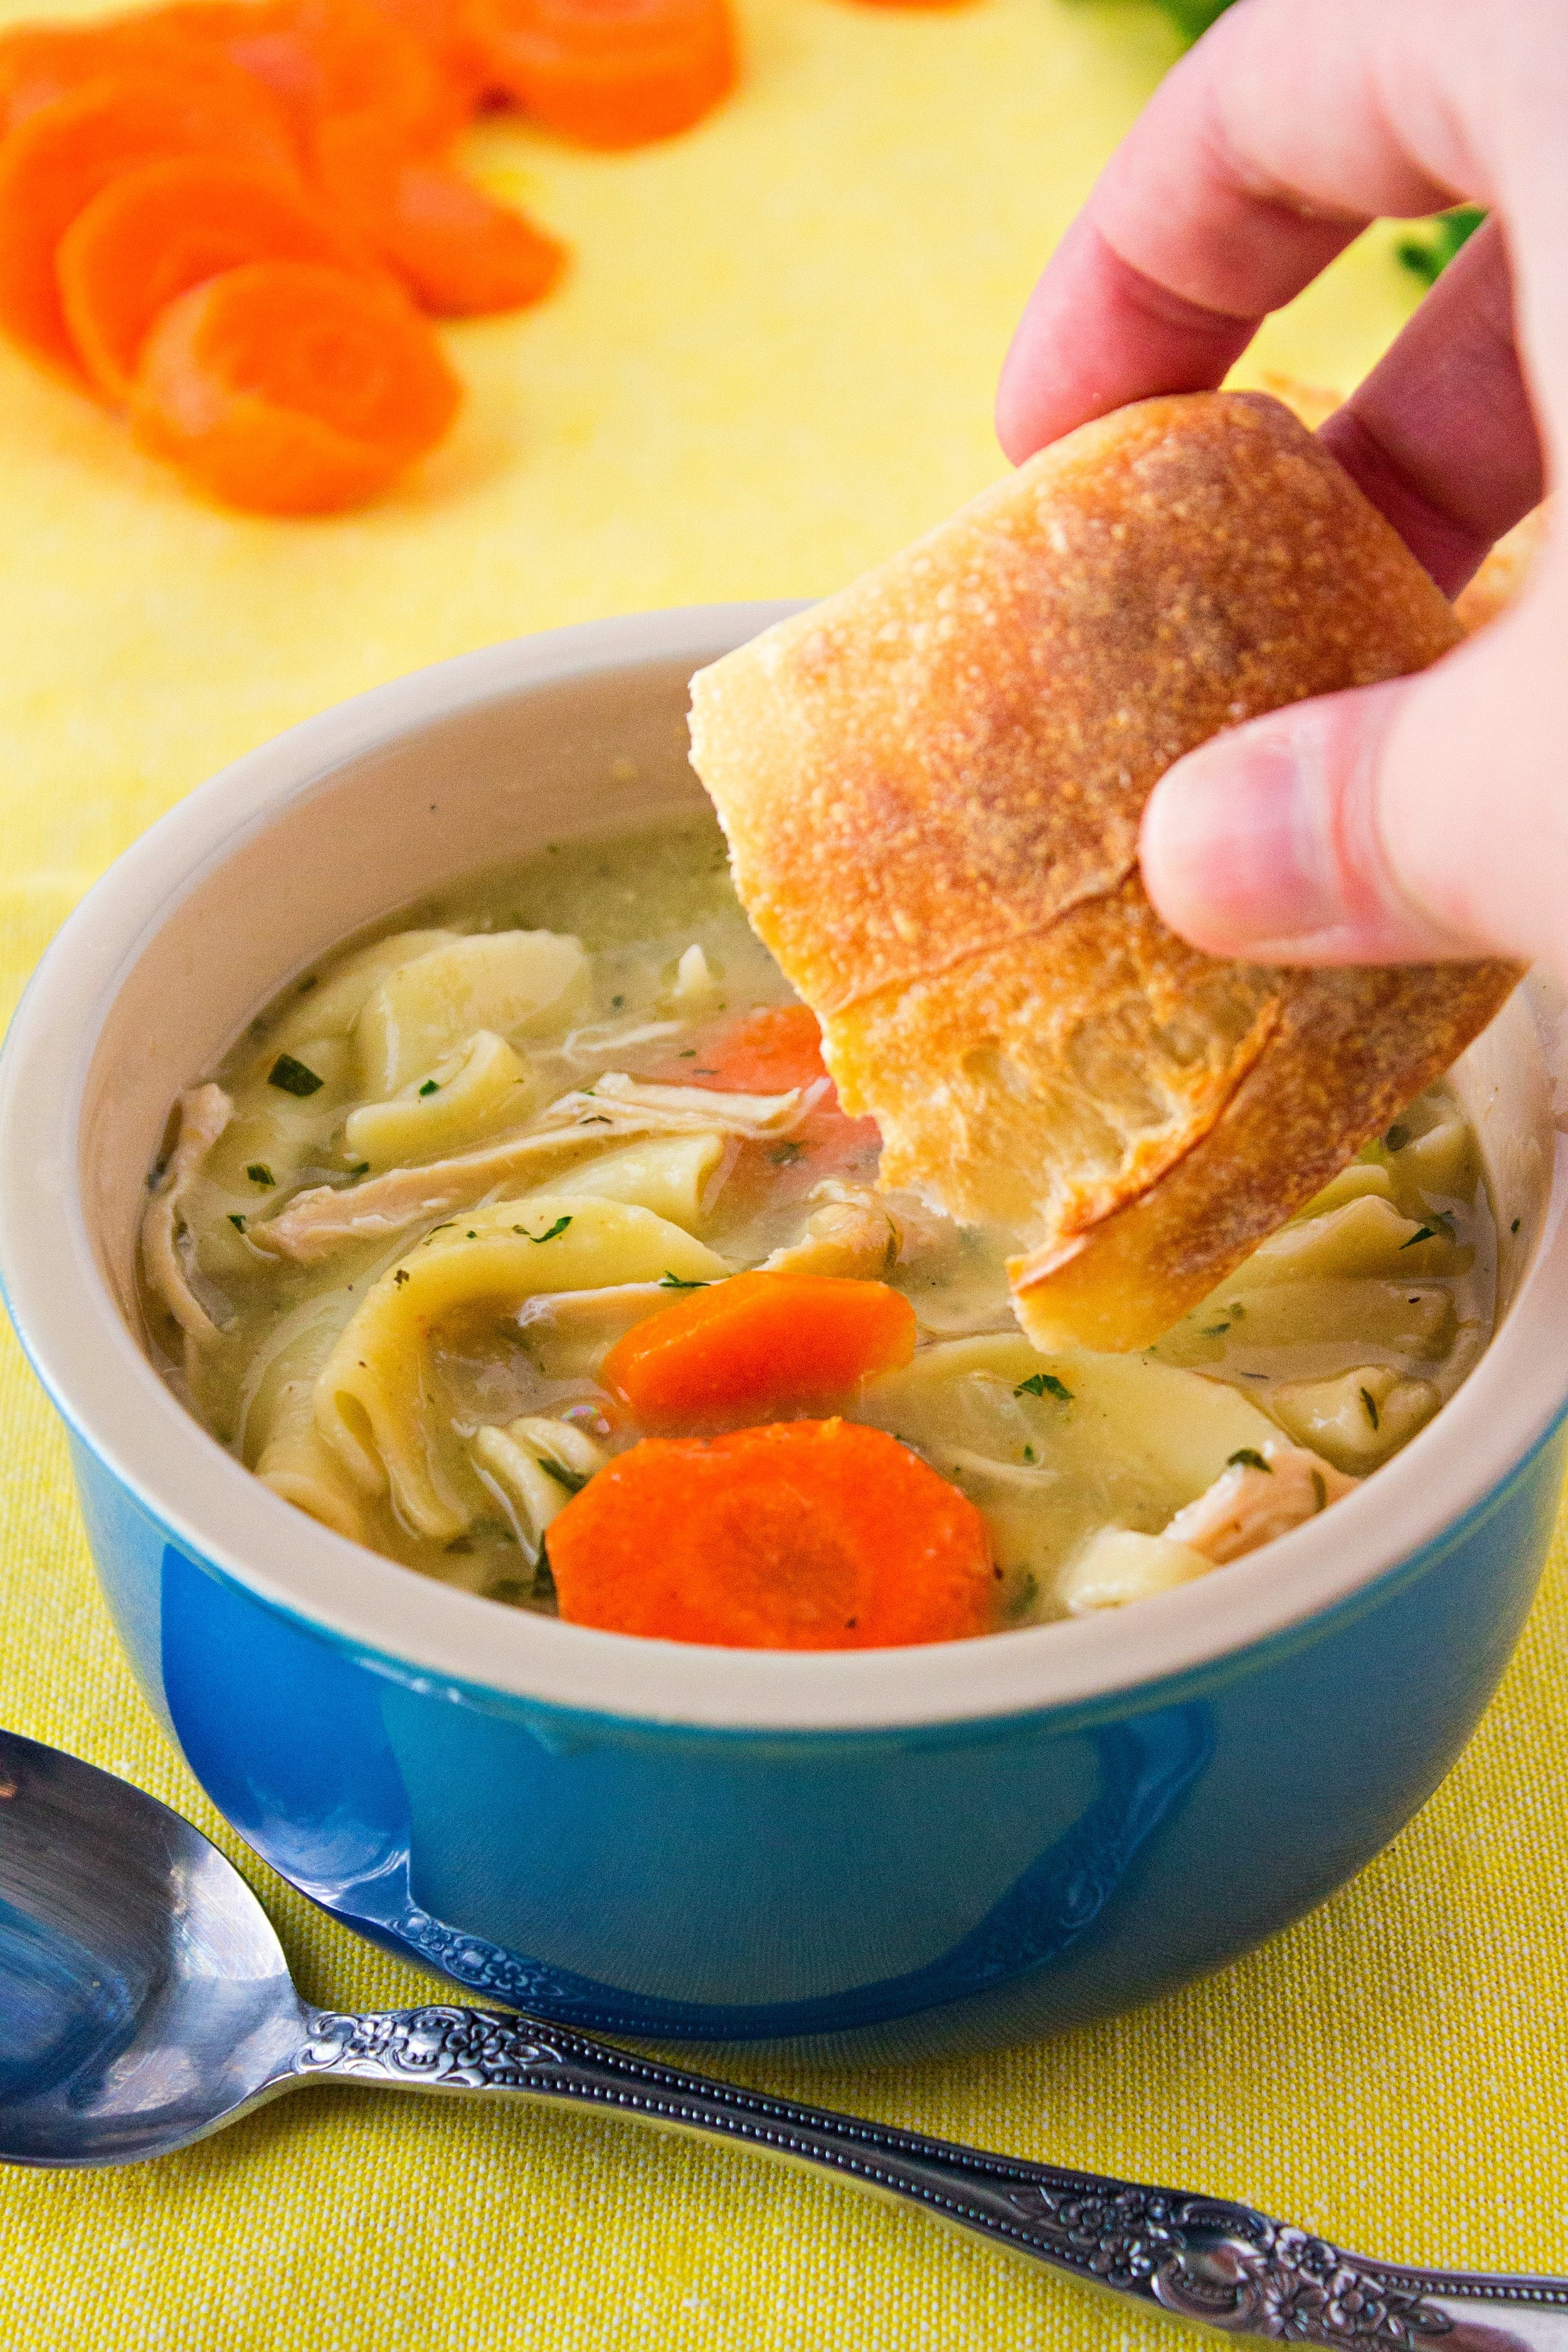 Dipping bread into Turkey Noodle Soup